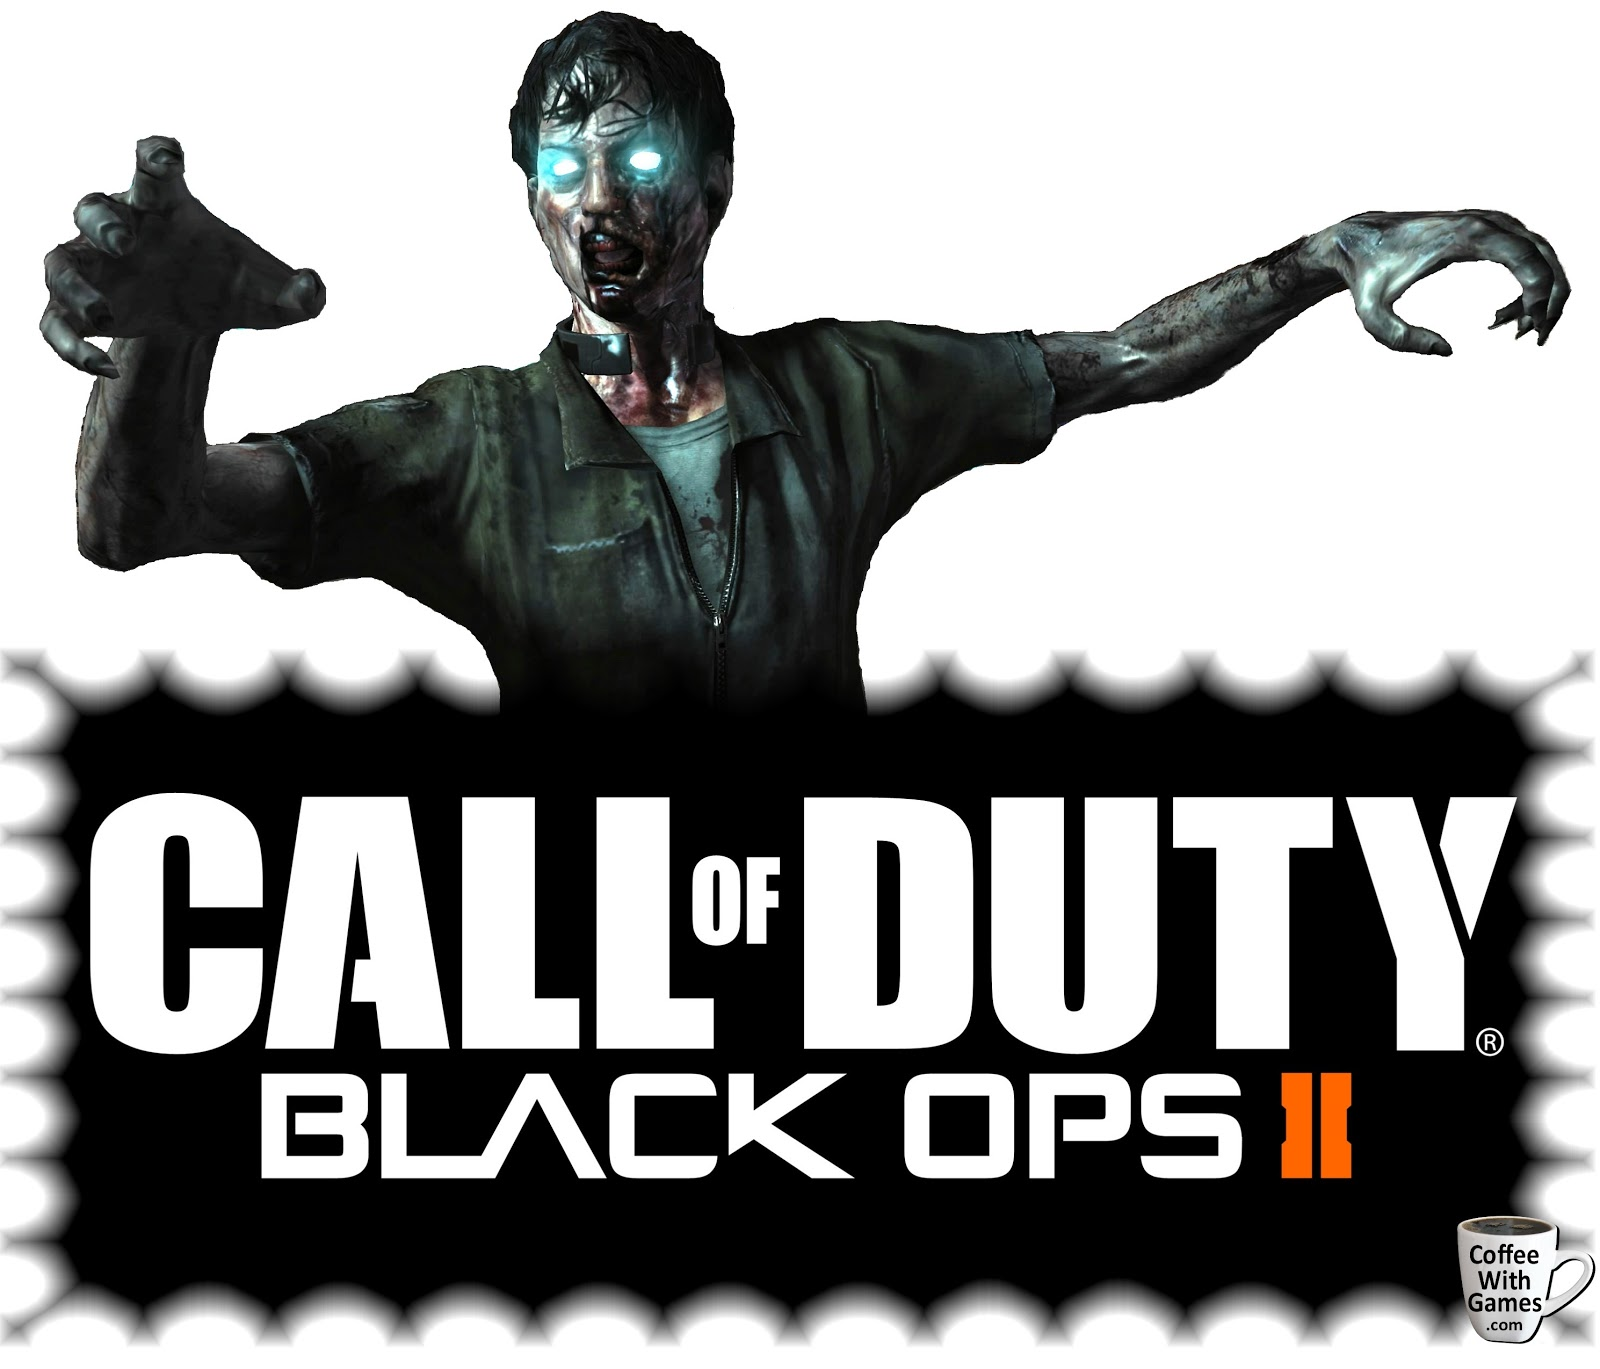 Hot Pictures Wallpaper: Black Ops 2 Call Of Duty Wallpaper